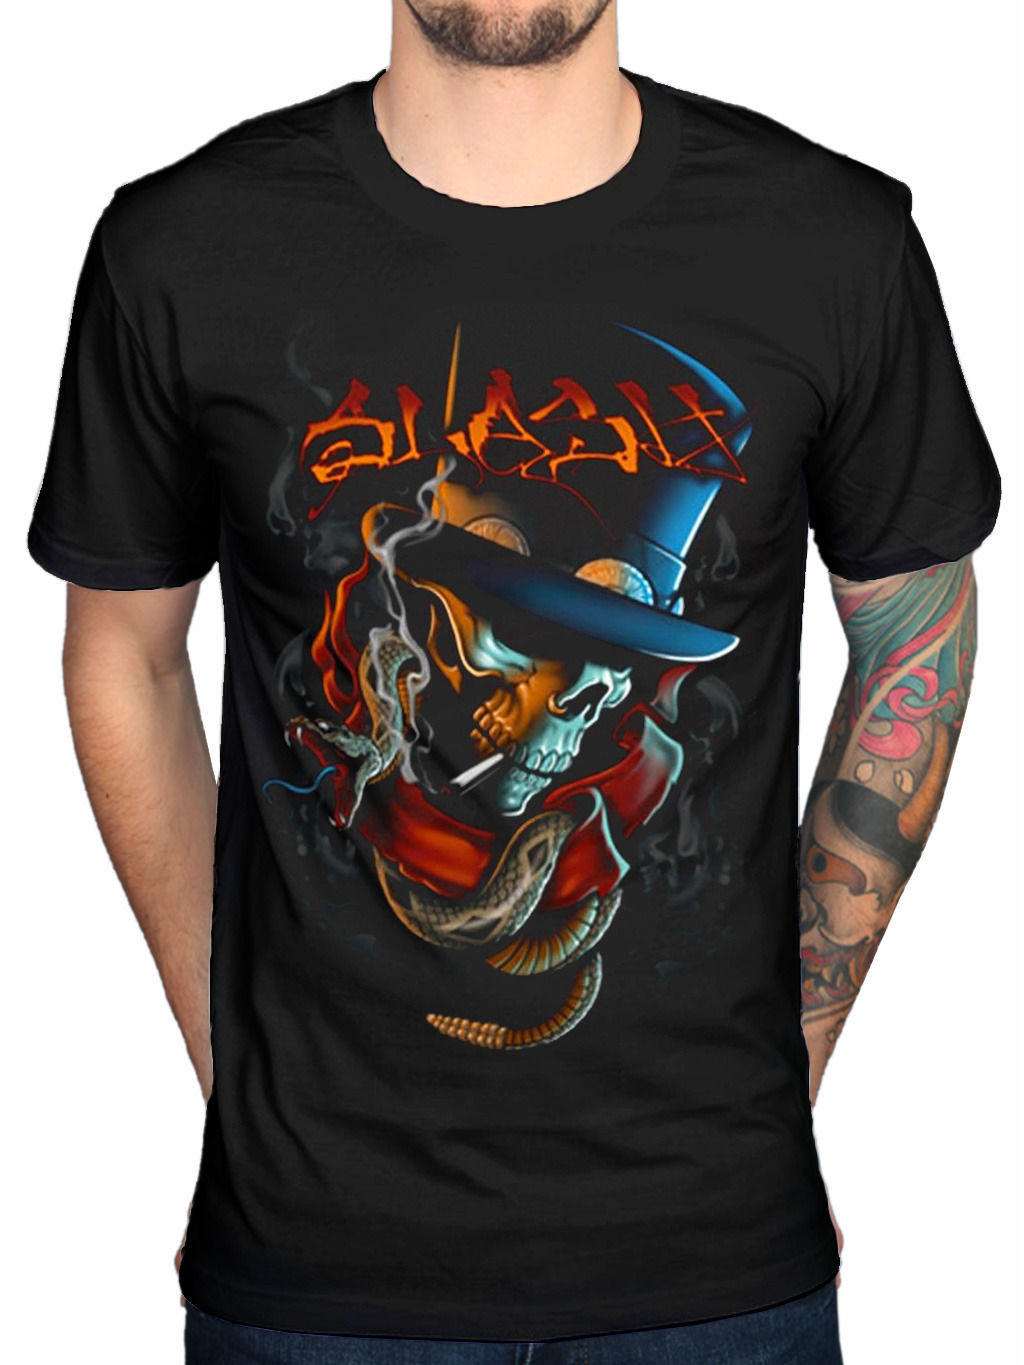 Official Slash Smoker T Shirt World On Fire Apocalyptic Love Made In Stoke Rock